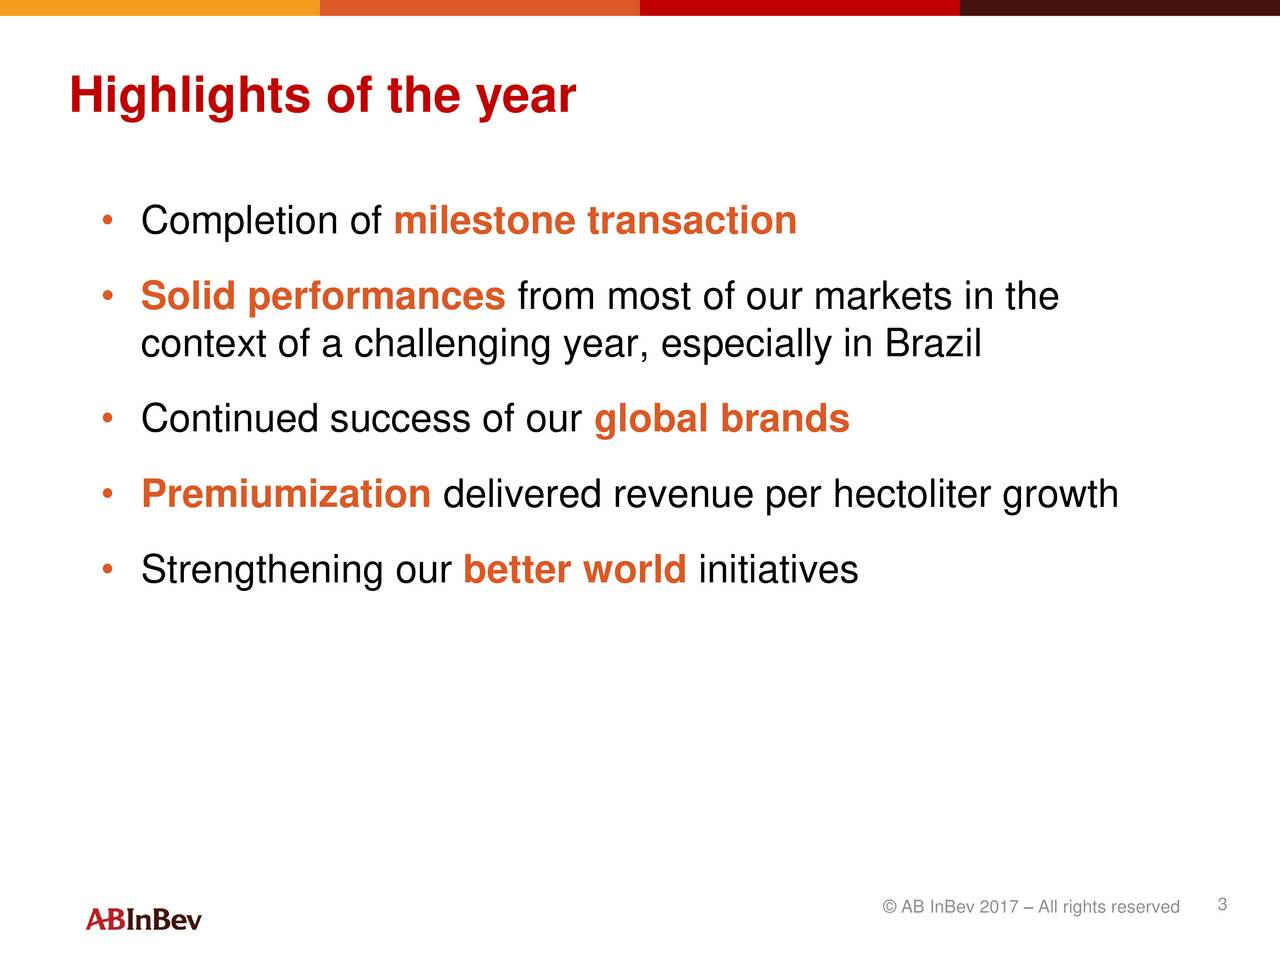 Completion of milestone transaction Solid performances from most of our markets in the context of a challenging year, especially in Brazil Continued success of our global brands Premiumization delivered revenue per hectoliter growth Strengthening our better world initiatives AB InBev 2017  All rights reserved